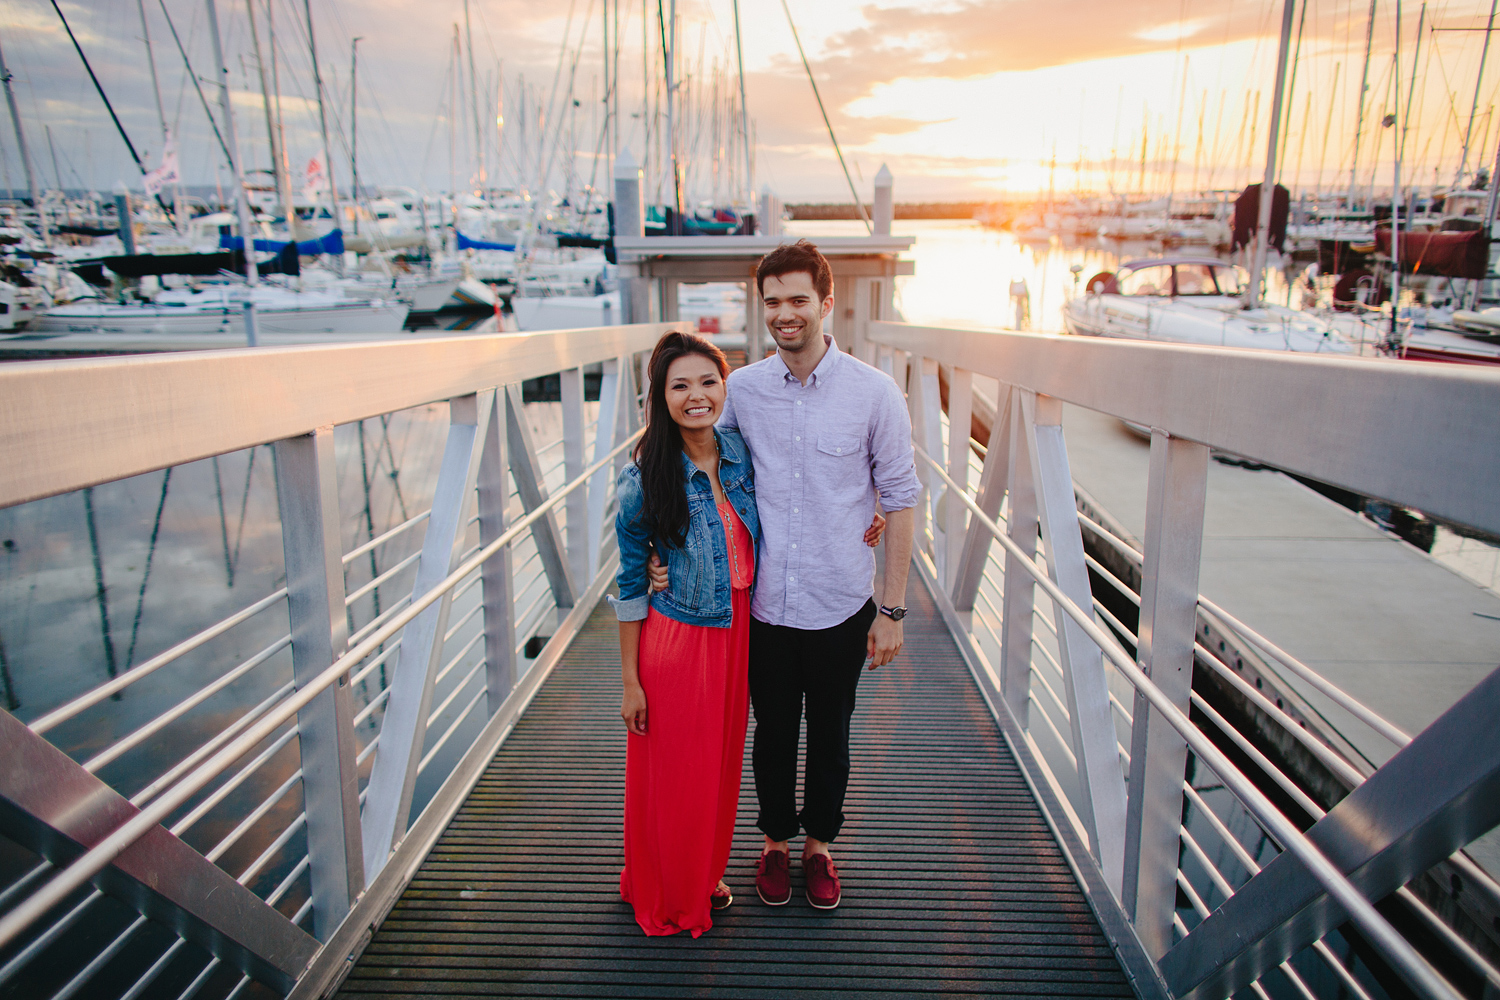 ryanflynn-seattle-sailing-engagement-film-photographer-0021.JPG